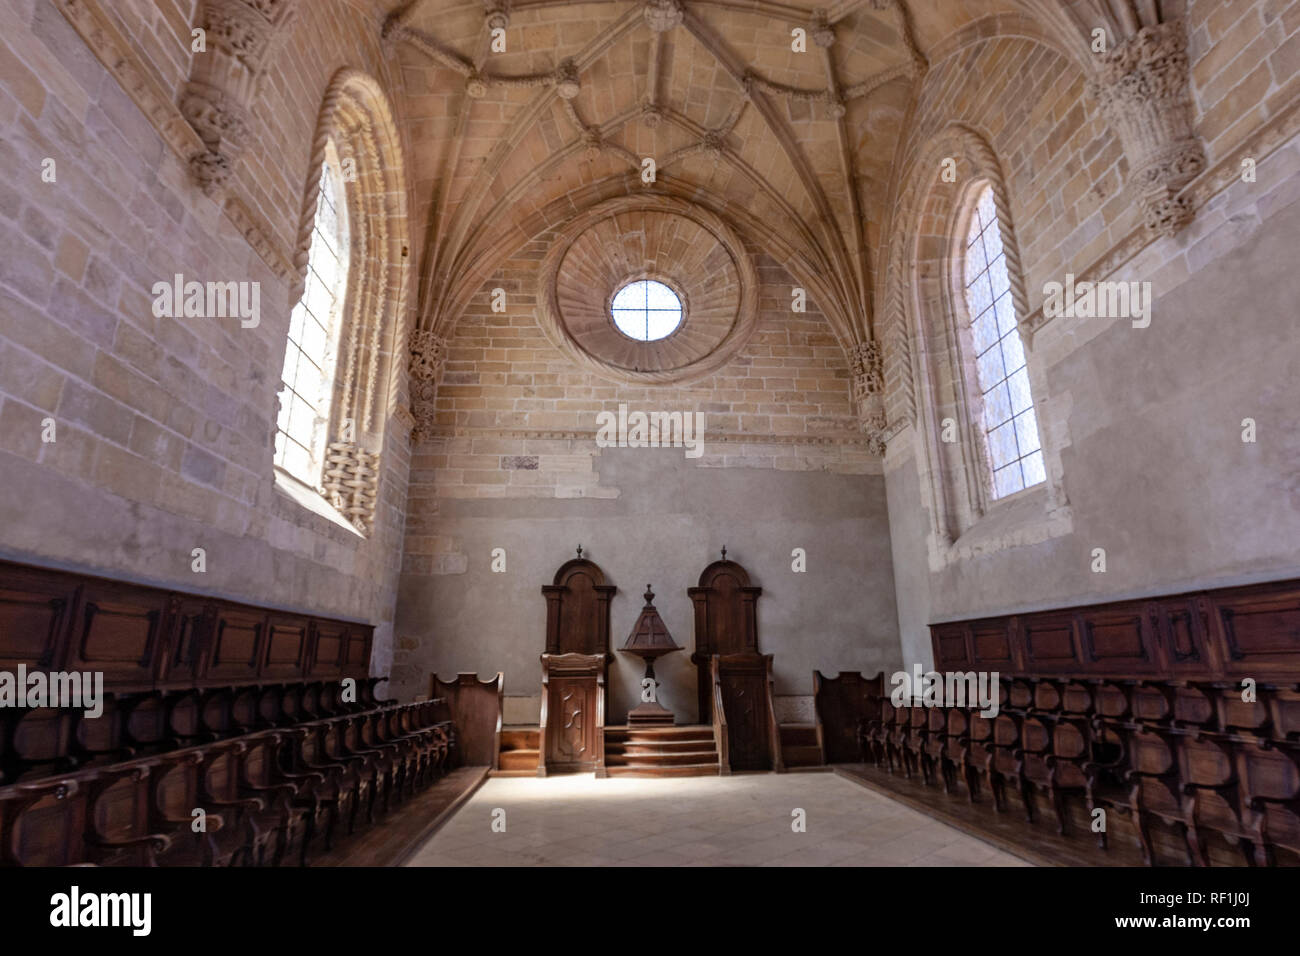 High choir and ribbed vaulting, Convent of Christ, Tomar, Portugal - Stock Image